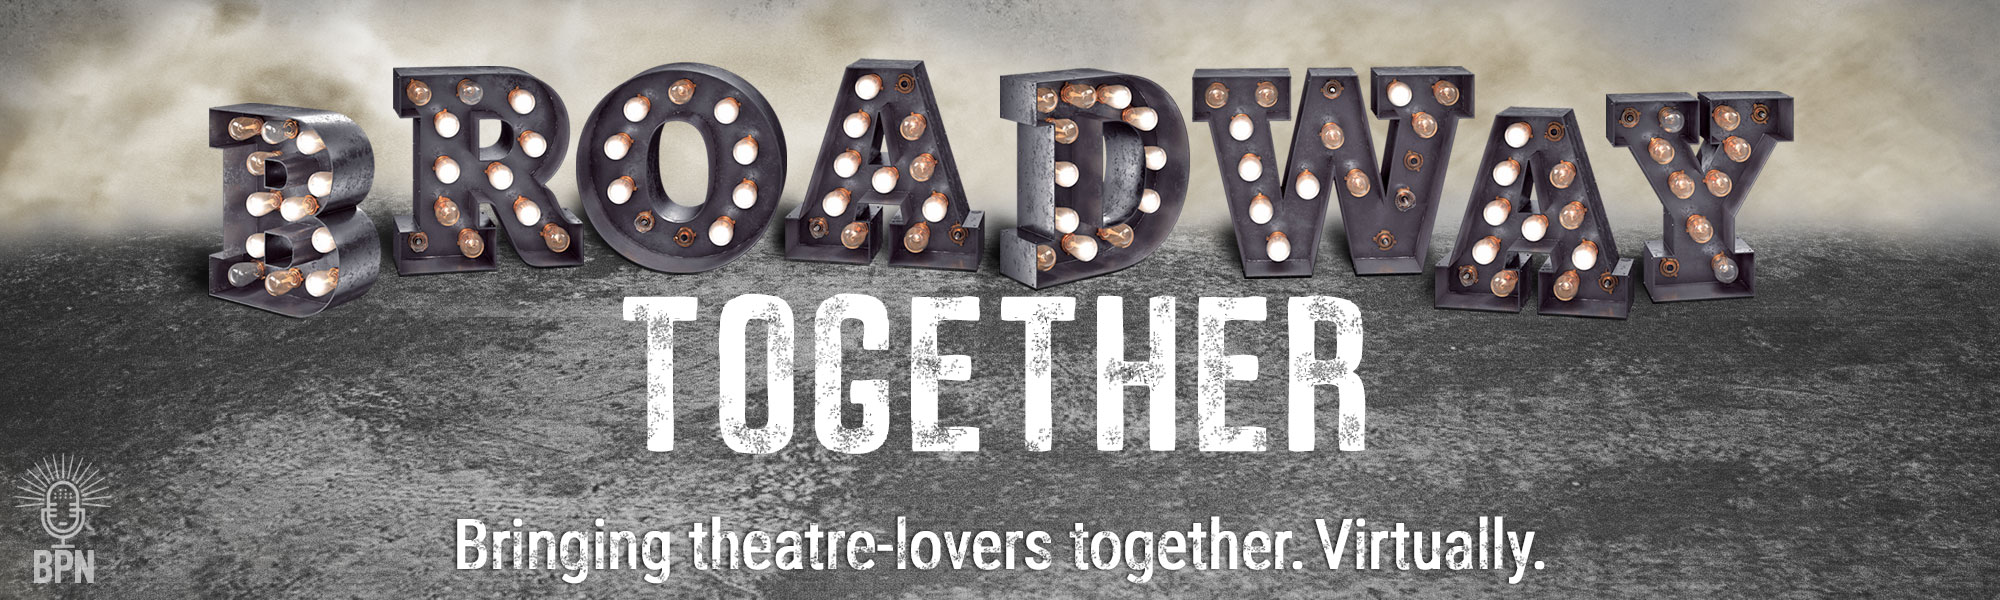 Broadway Together: Bringing theatre-lovers together. Virtually.